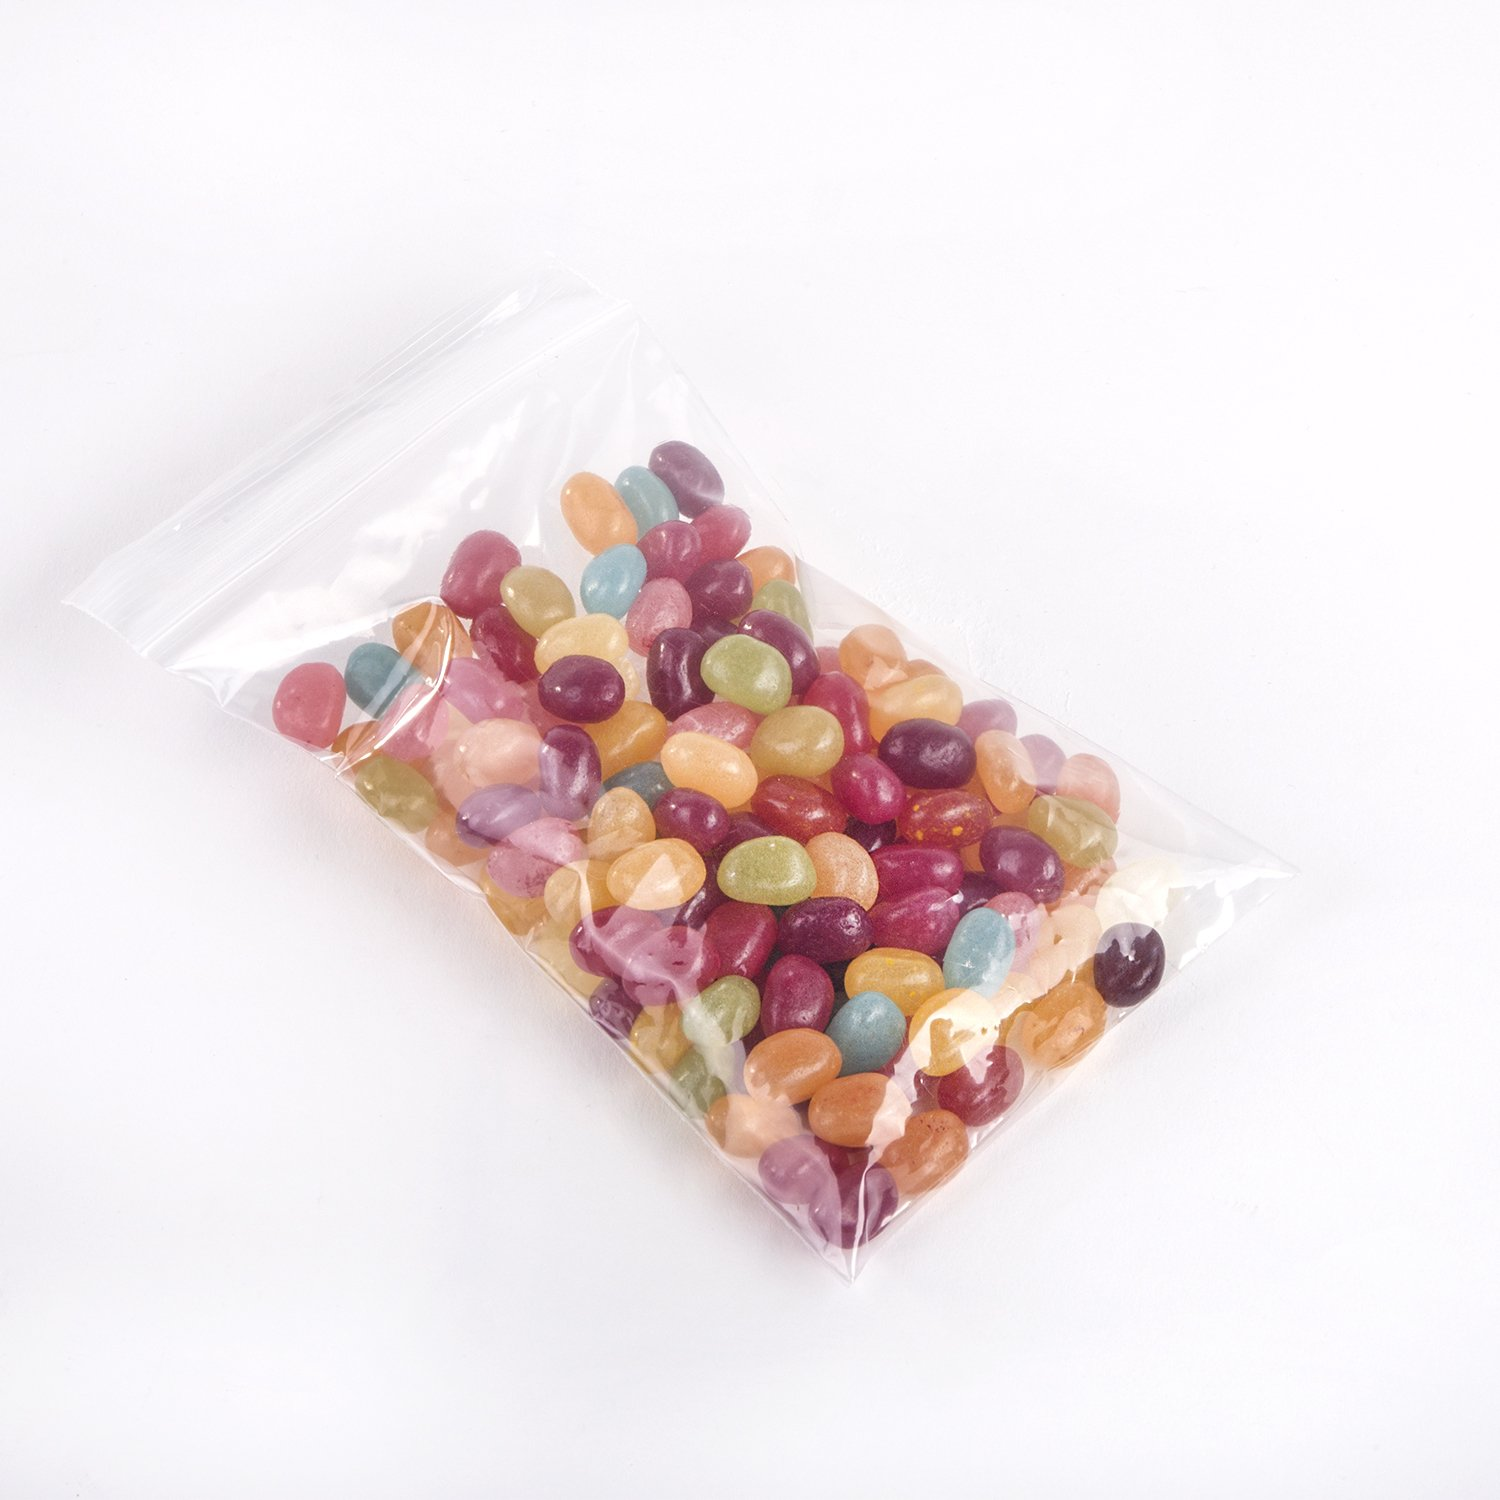 Crafts 9 x 12 Inches, Pack of1 00 Seeds Resealable Shipping Supplies Owlpack Clear Zipper Poly Bag 2 Mil Reclosable Storage for Jewelry